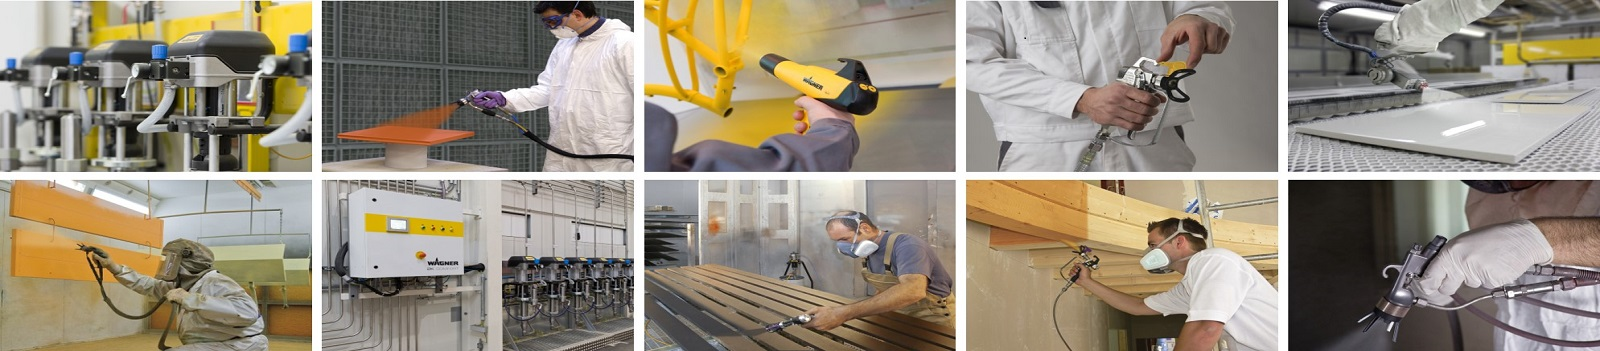 Yorkshire Spray Services Ltd - Spray Applications, Airless, Aircoat, Conventional & Powder